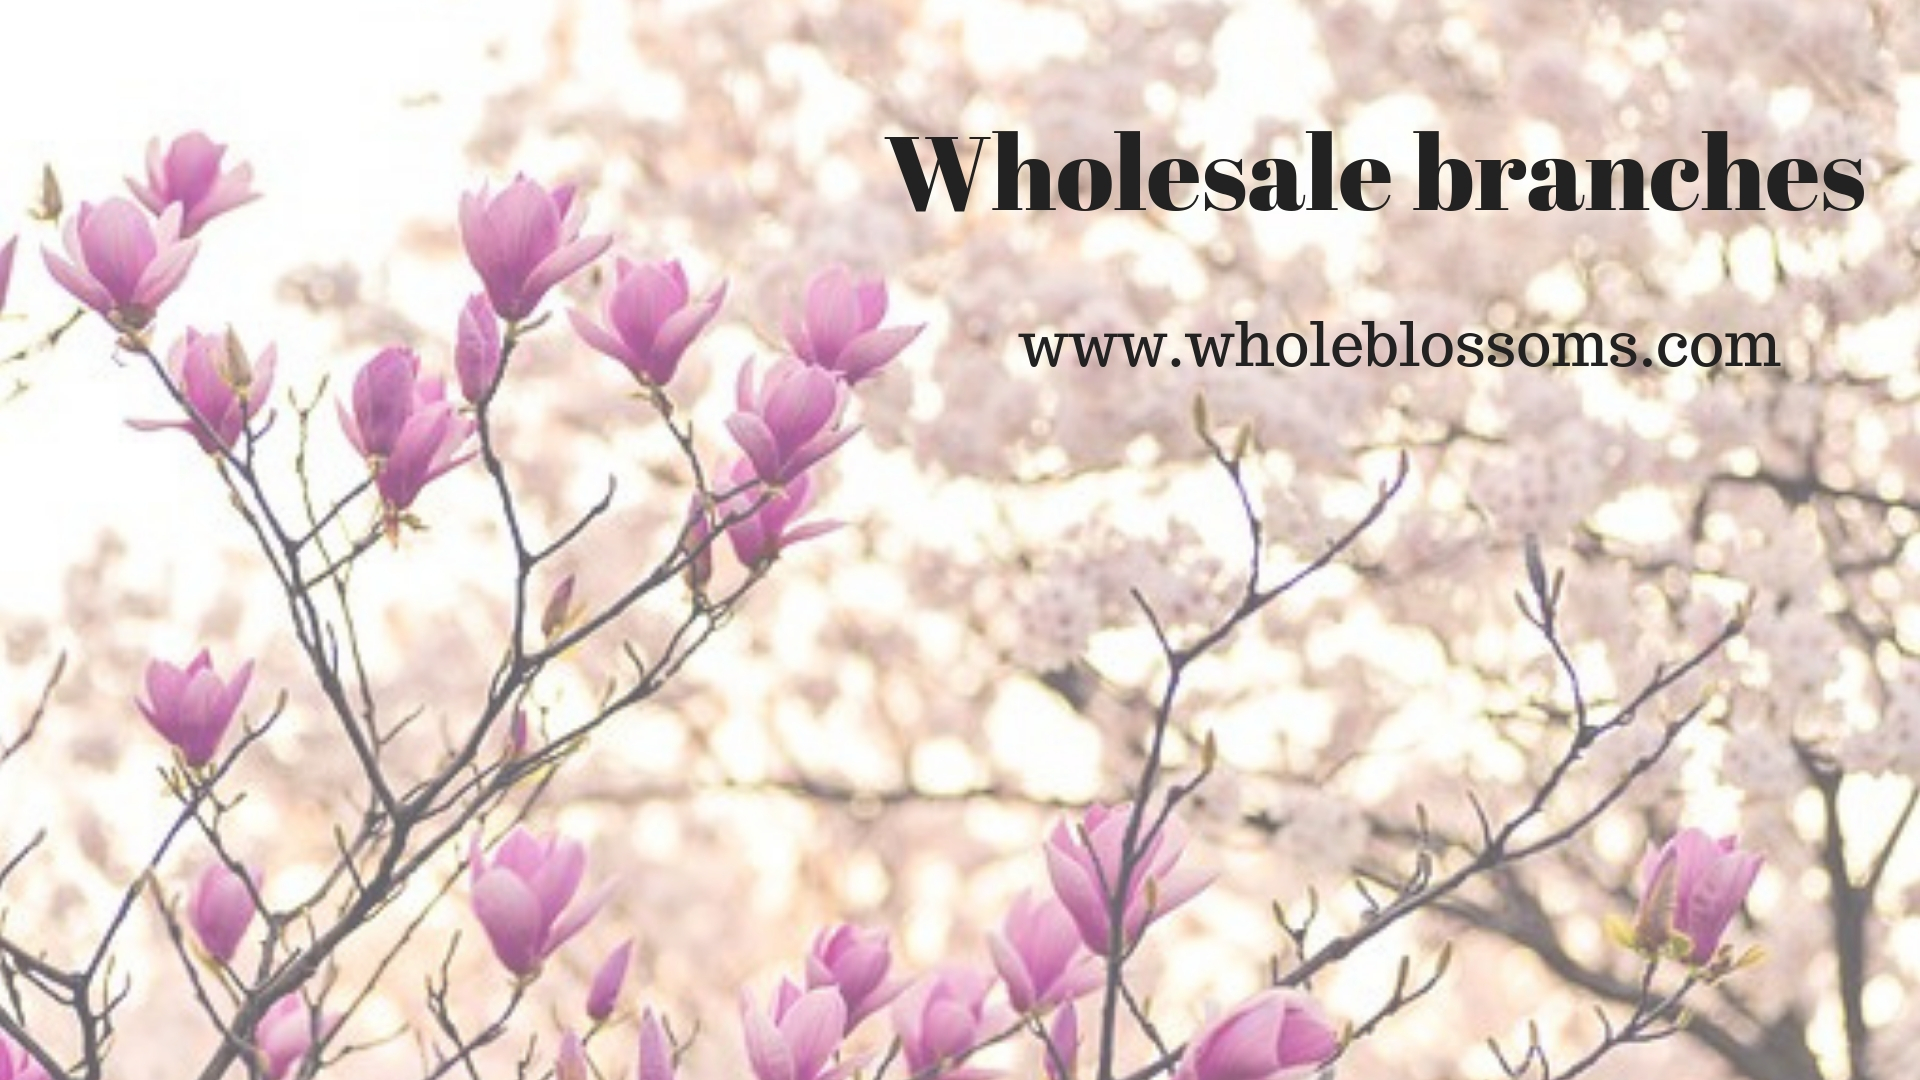 Buy Wholesale Branches from Whole Blossoms at the Effective Prices